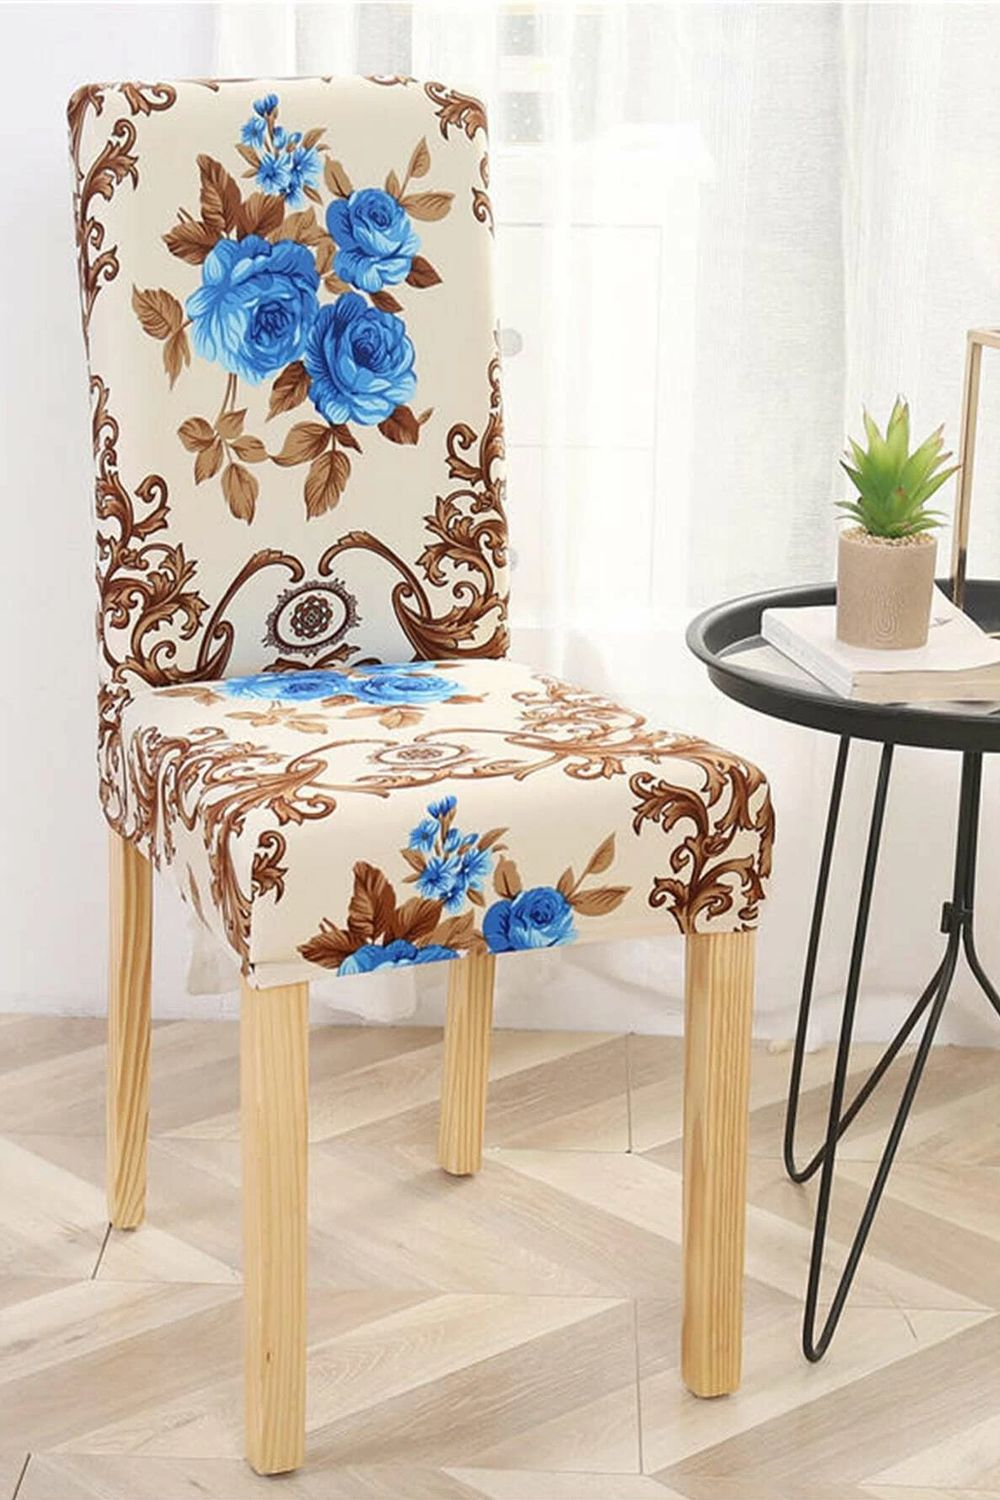 Flower Print Stretchy Chair Cover in 2020 Chair cover